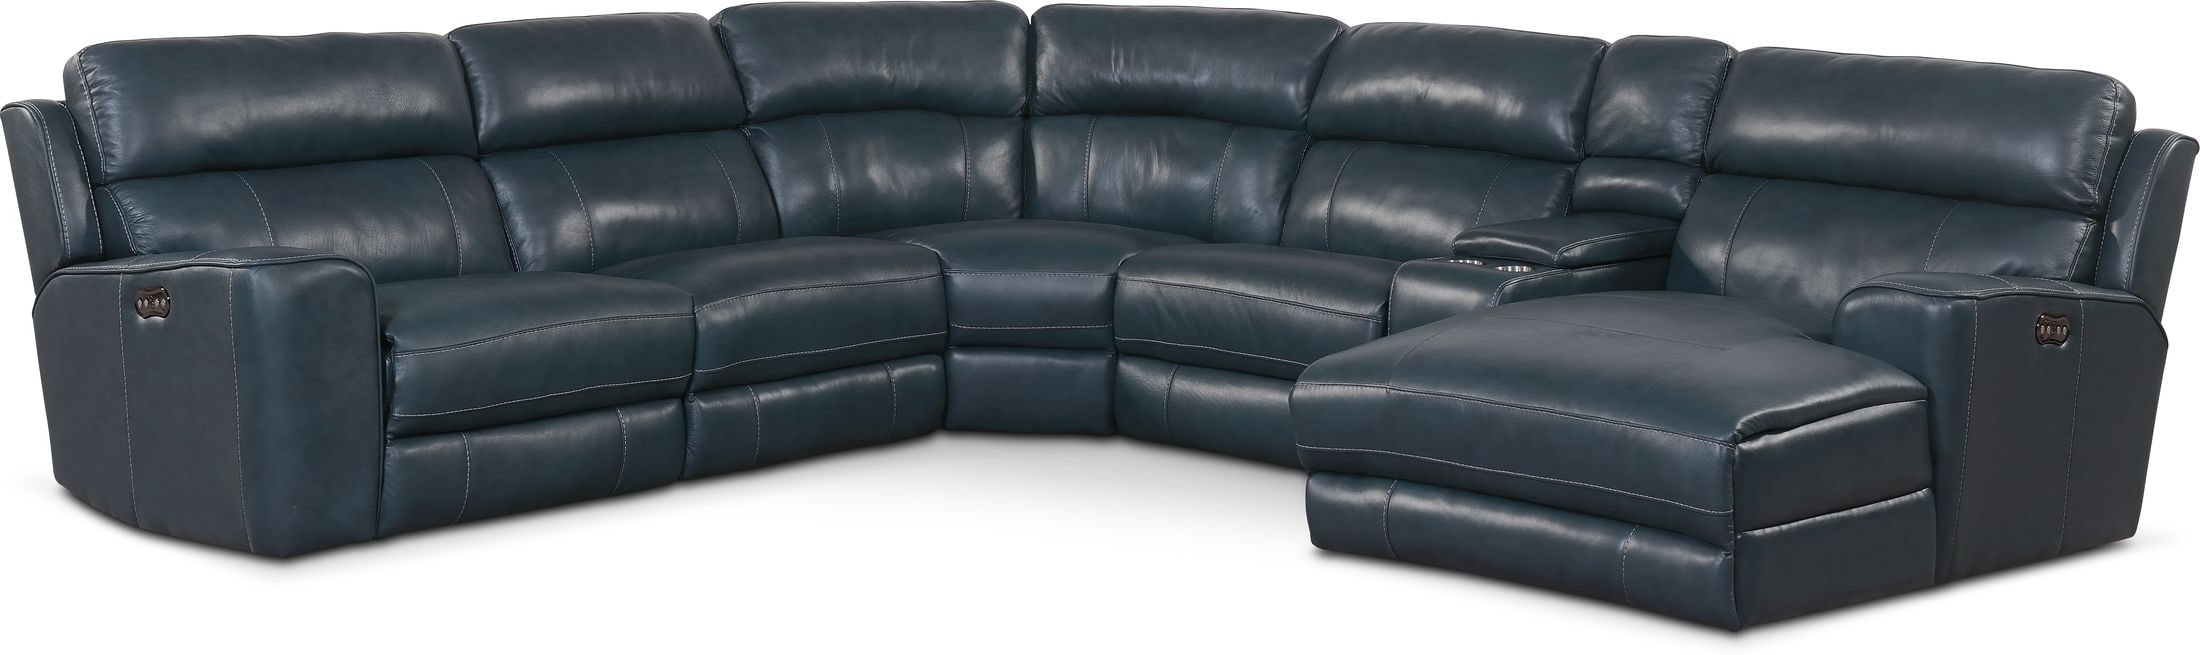 Newport 6 Piece Dual Power Reclining Sectional With Chaise With Regard To Widely Used Forte Gray Power Reclining Sofas (View 9 of 15)